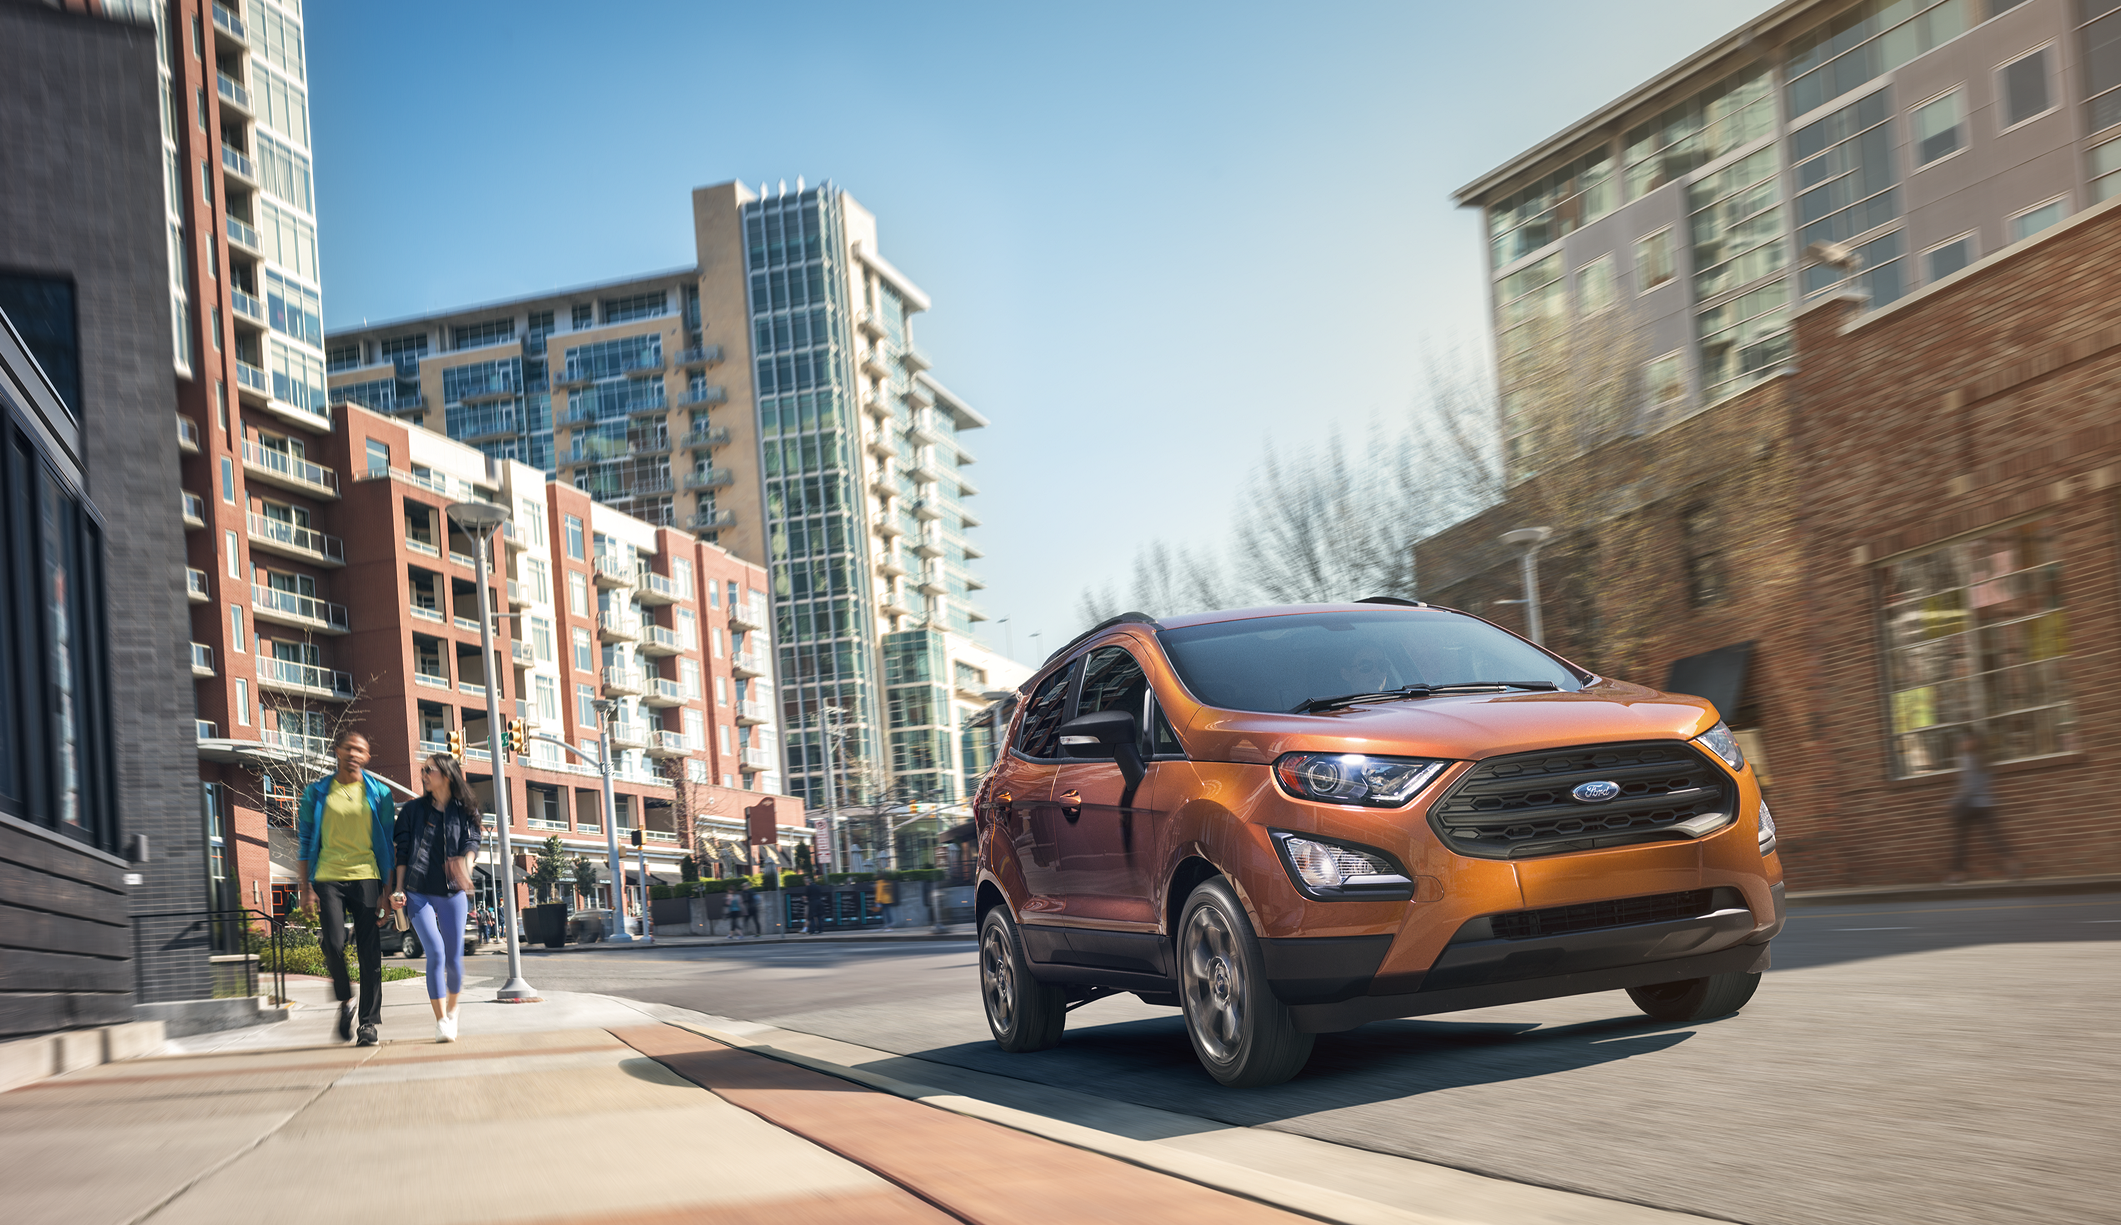 Ford Louisville Ky >> Ford Ecosport Lease Options Oxmoor Ford Louisville Ky